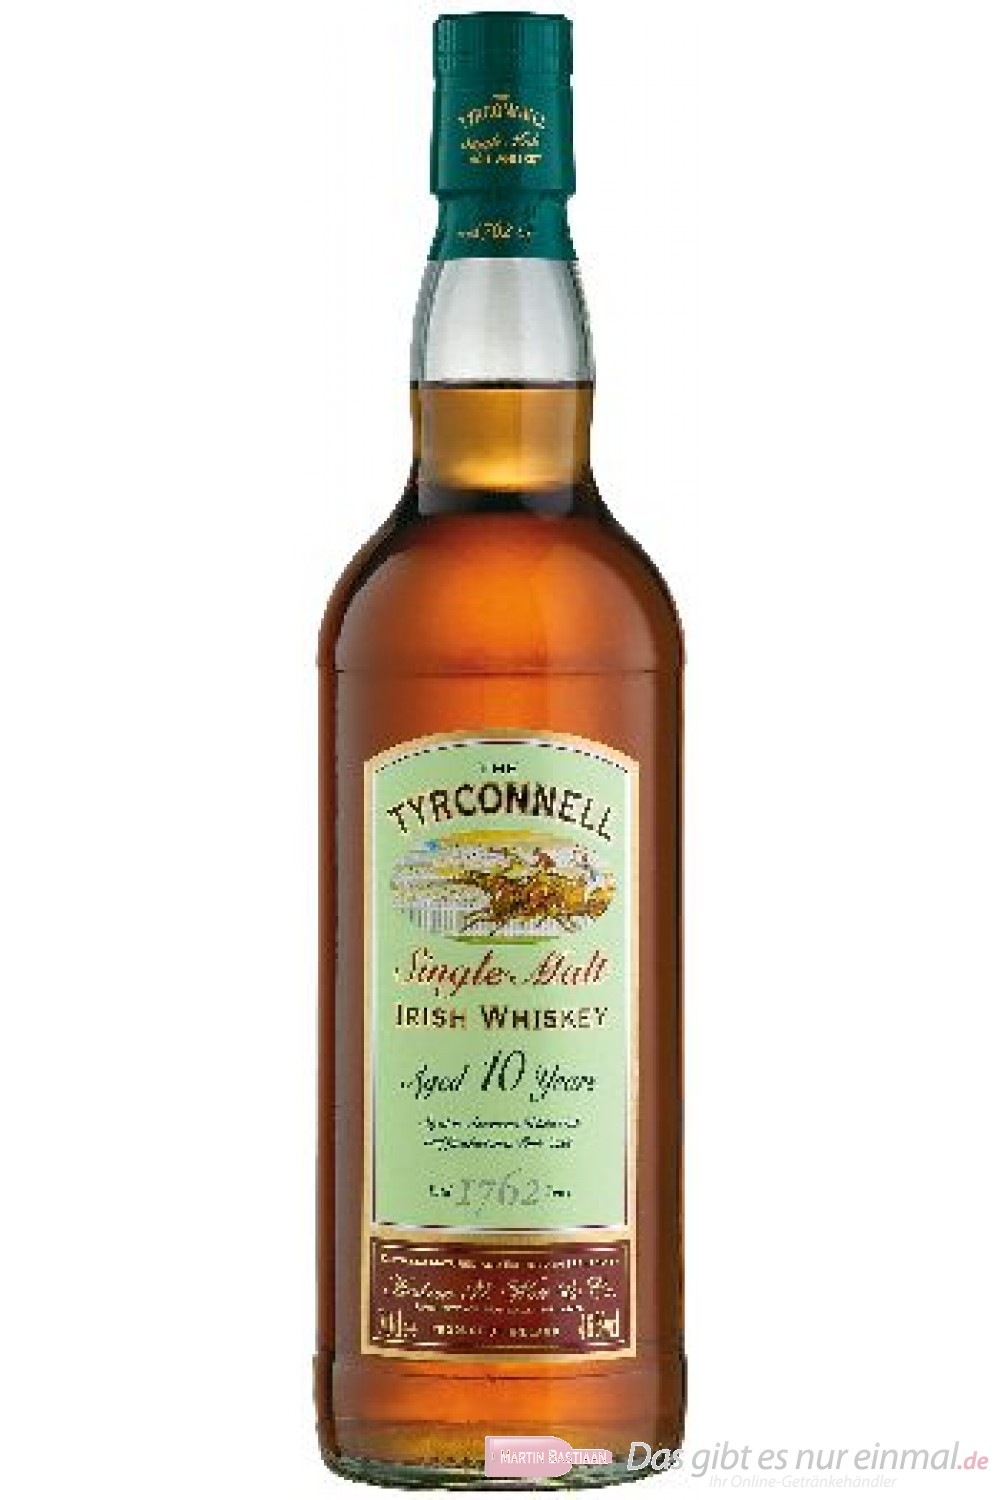 The Tyrconnell 10 Years Port Wood Finish Single Malt Irish Whiskey 46% 0,7l Flasche